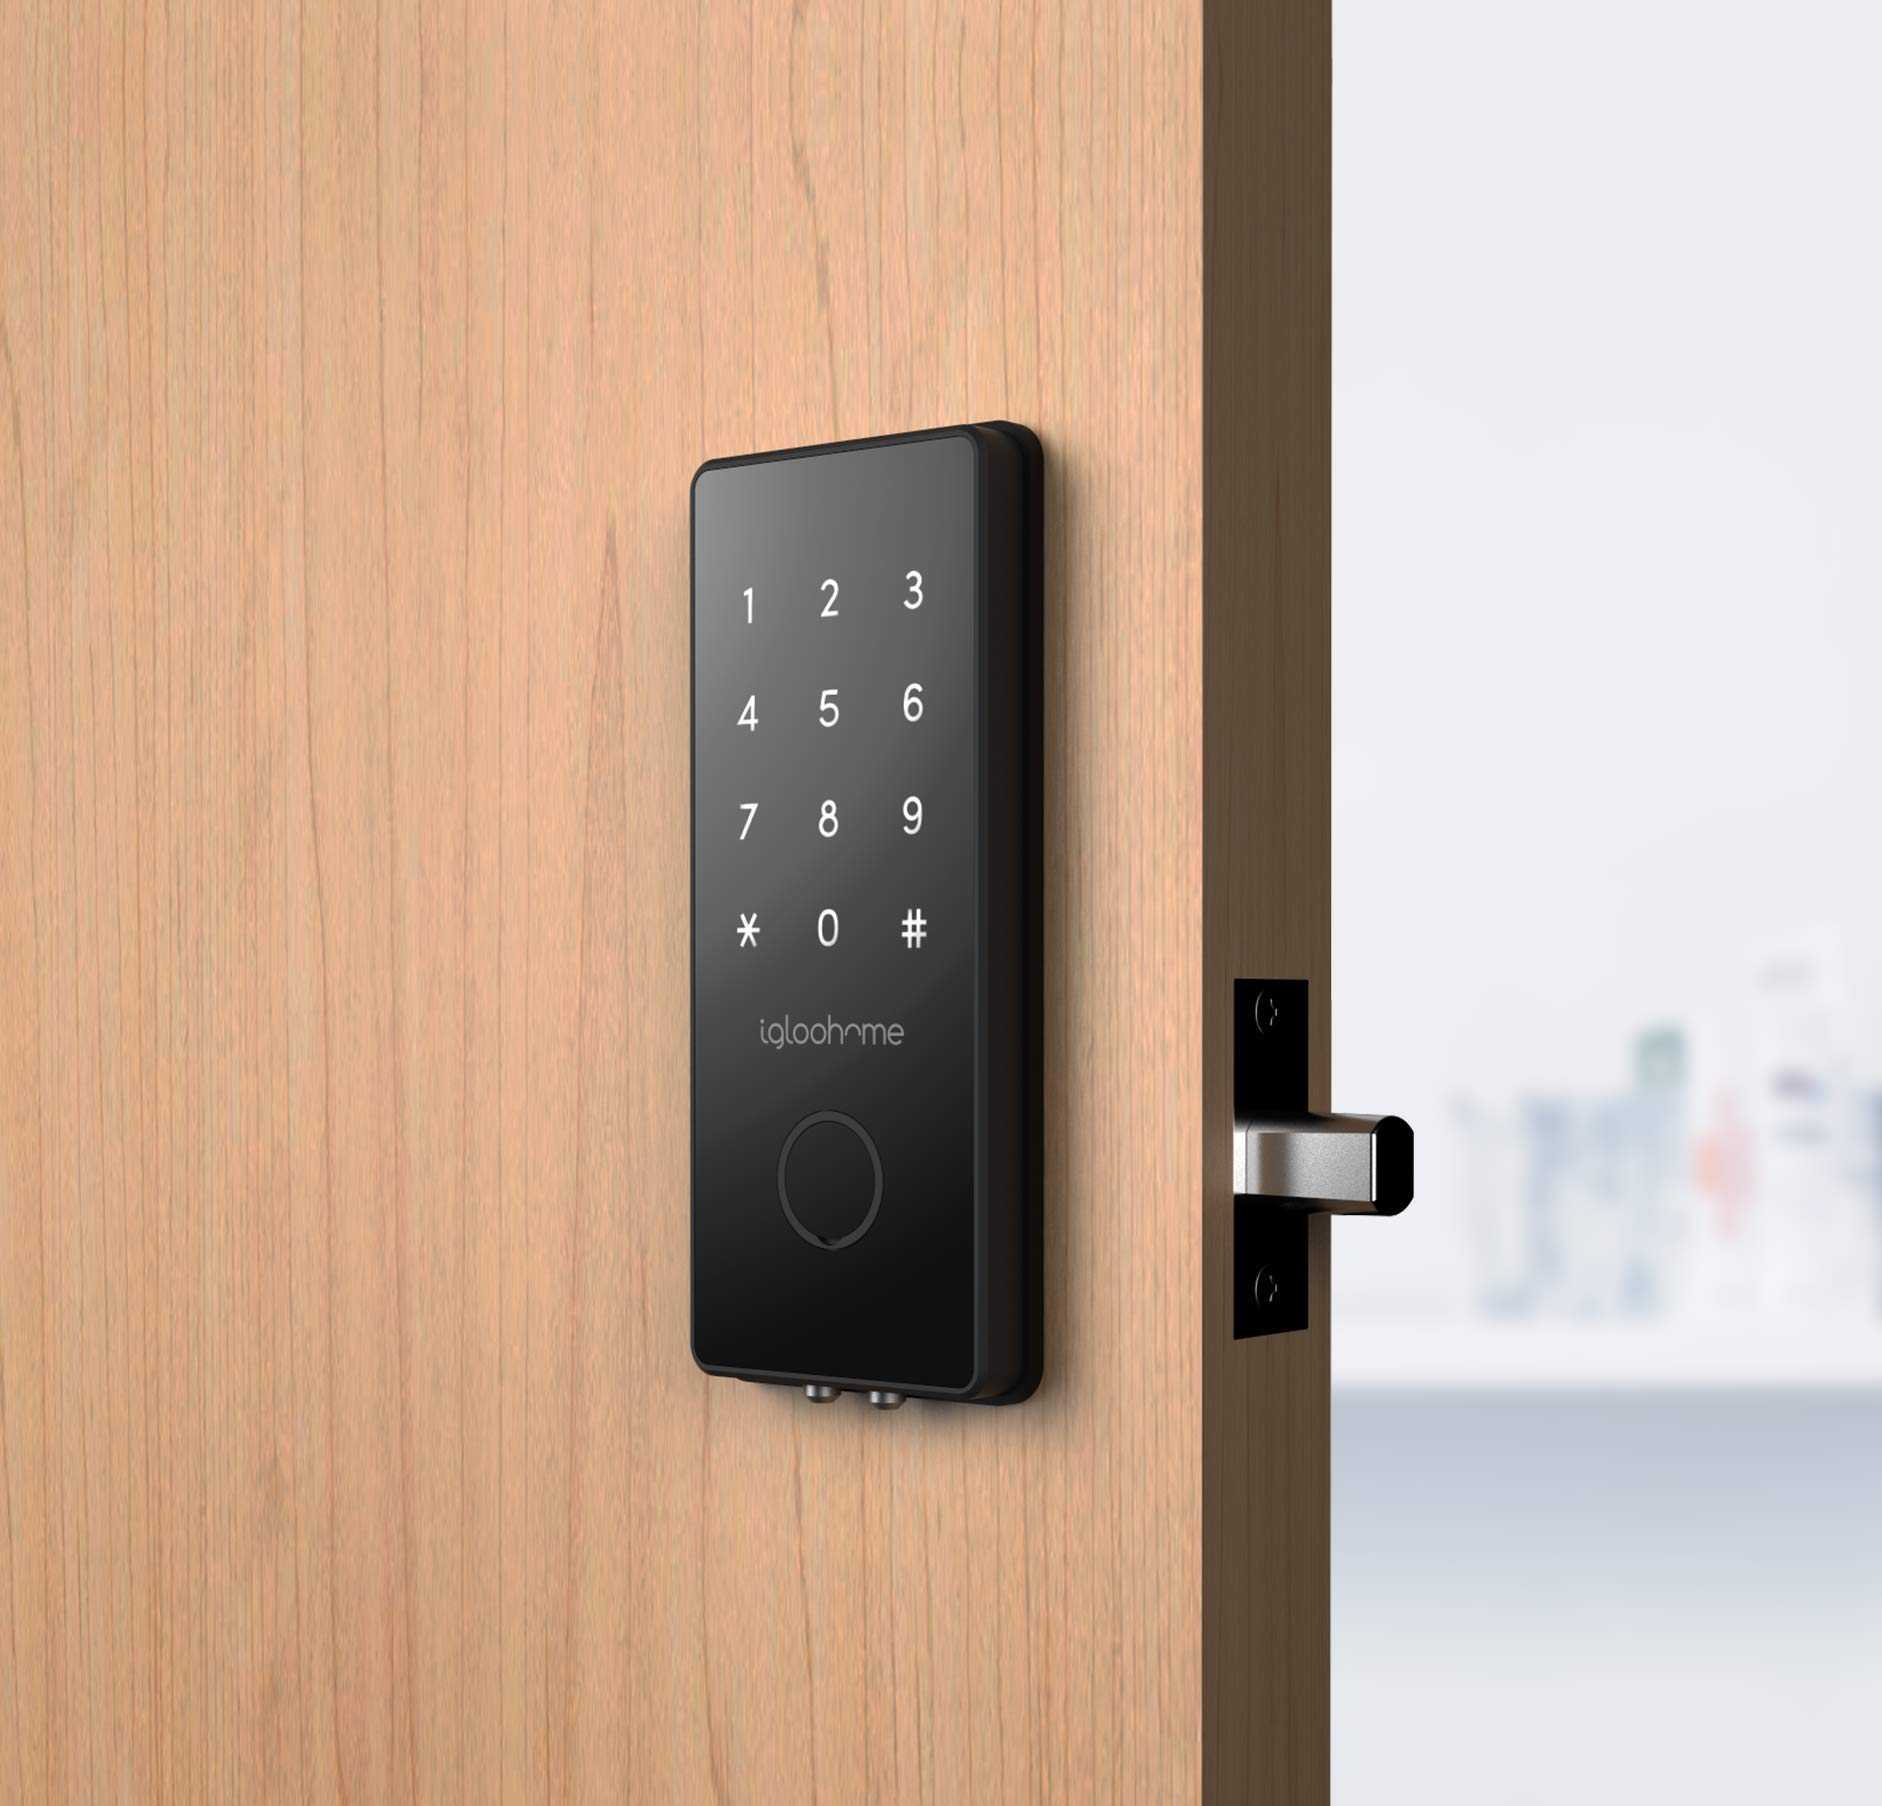 Igloohome Smart Electronic Deadbolt 2S, Grant & Control Remote Access with Pin Code - Touch Screen Keypad with Built-in Alarm - Bluetooth Enabled Works Offline - Works with Your Smartphone by igloohome (Image #4)